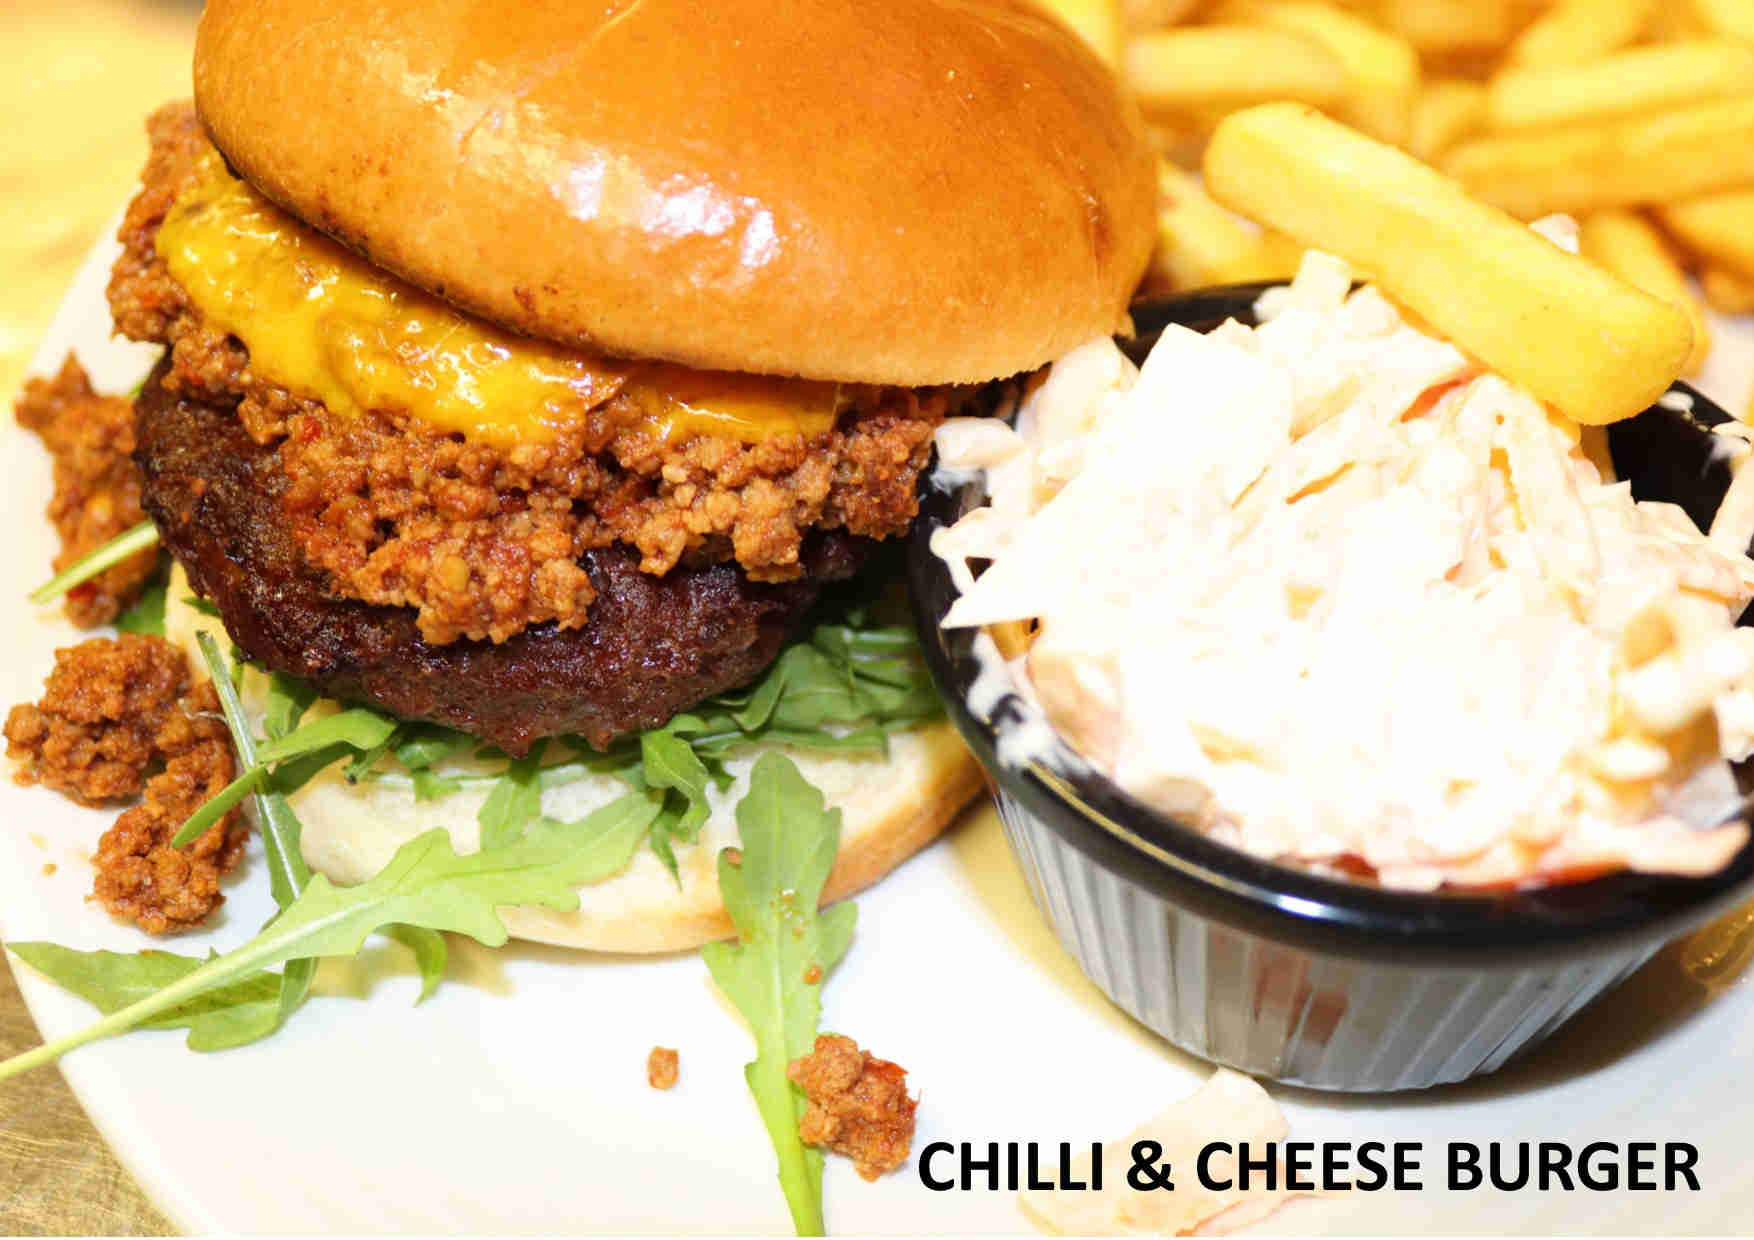 CHILLI & CHEESE BURGER